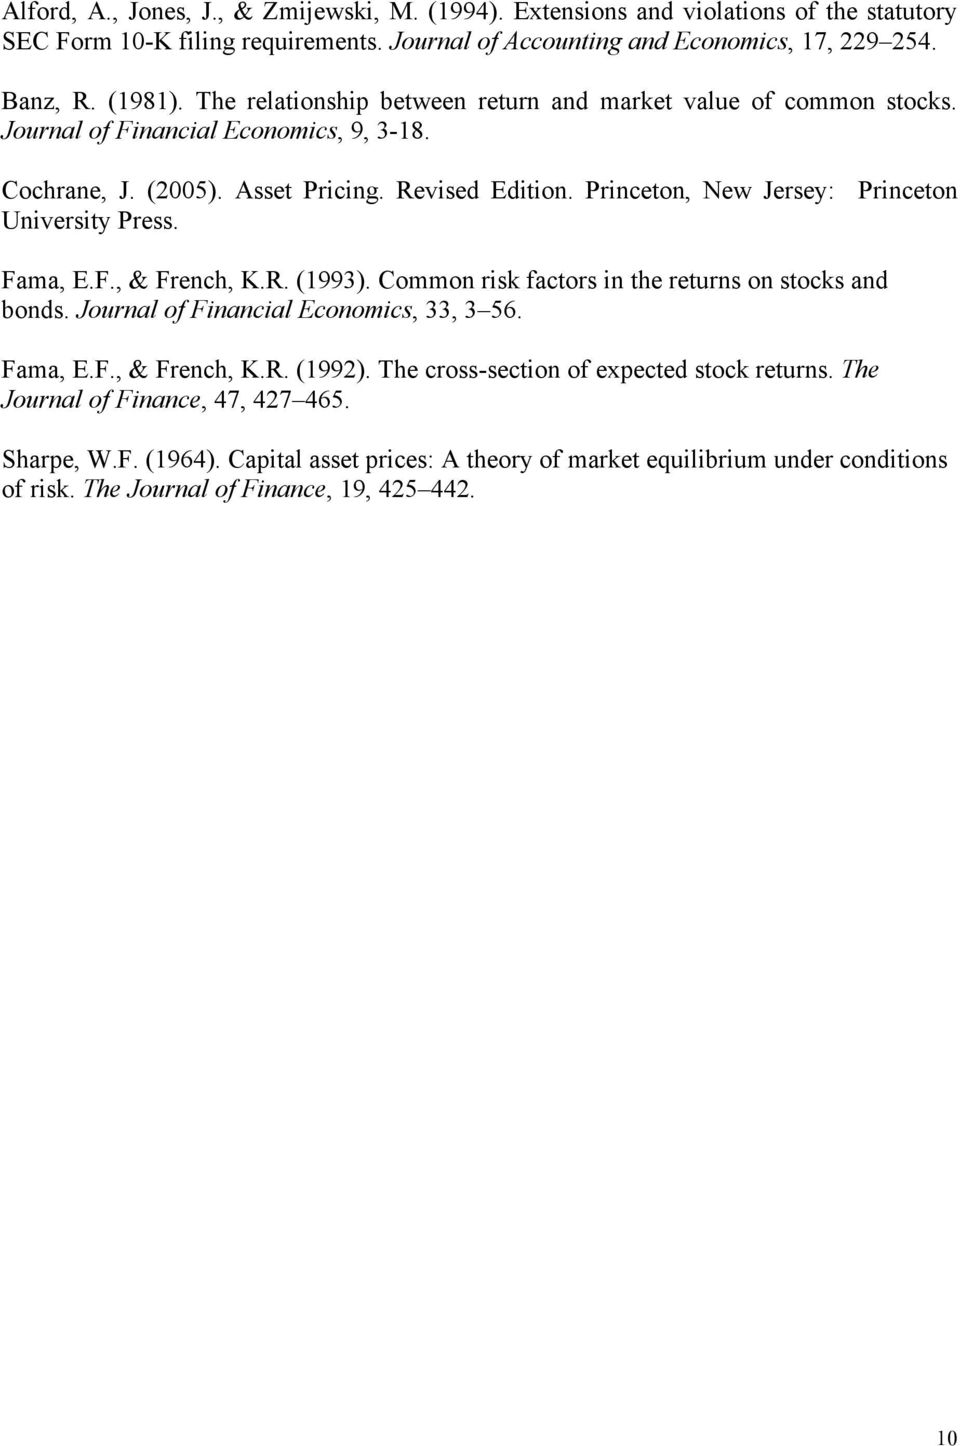 fama and french 1992 This draft: february 2012 § fama and french are also consultants to dimensional fund advisors fama and french, 1992 lakonishok, shleifer, and vishny, 1994.